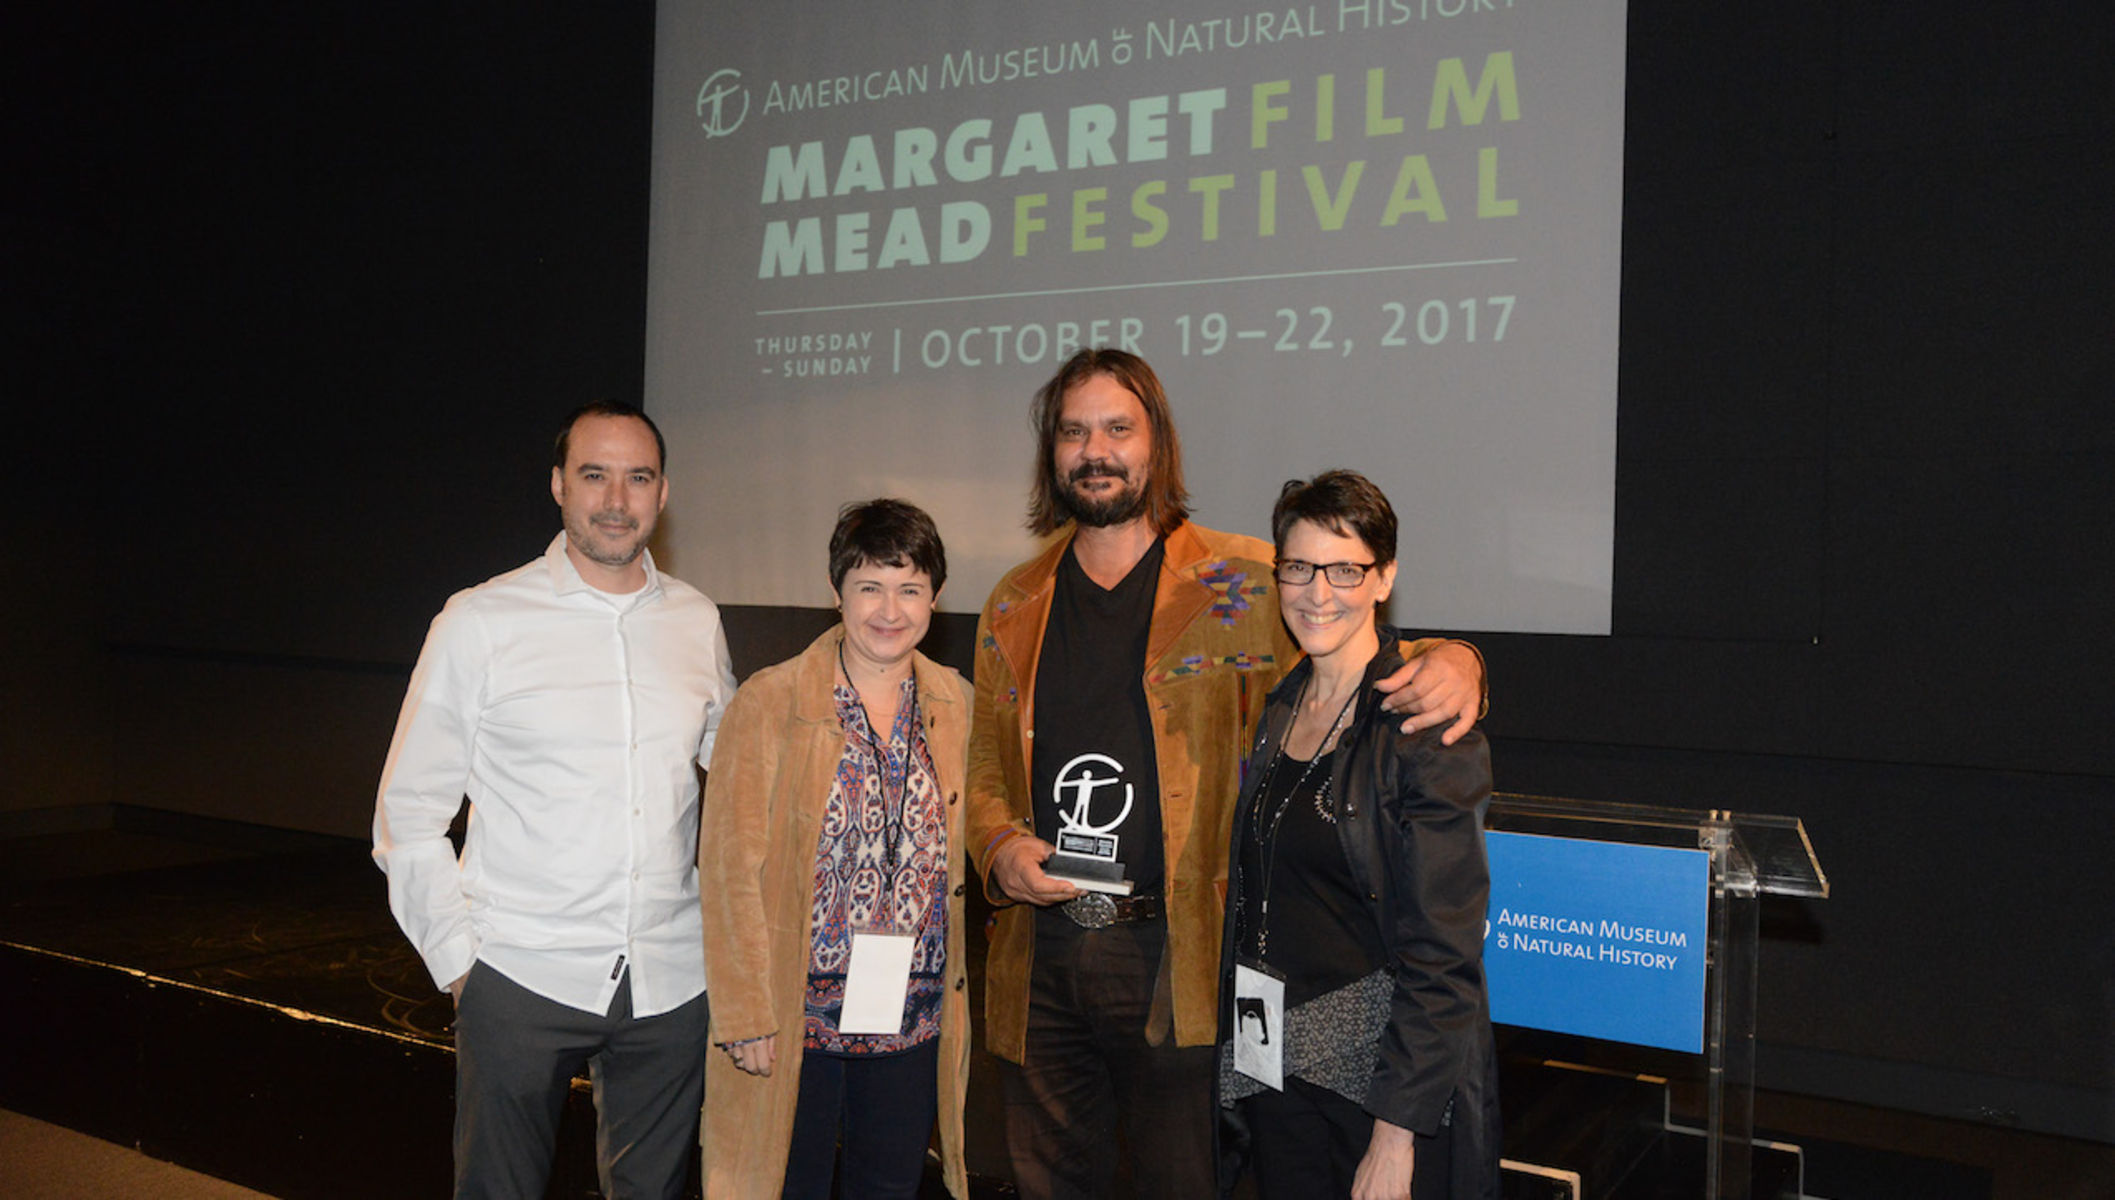 From left to right: Mead juror Andrew Okpeaha MacLean, Mead's granddaughter Sevanne Kassarjian, and Faye Ginsburg, anthropologist and director of NYU